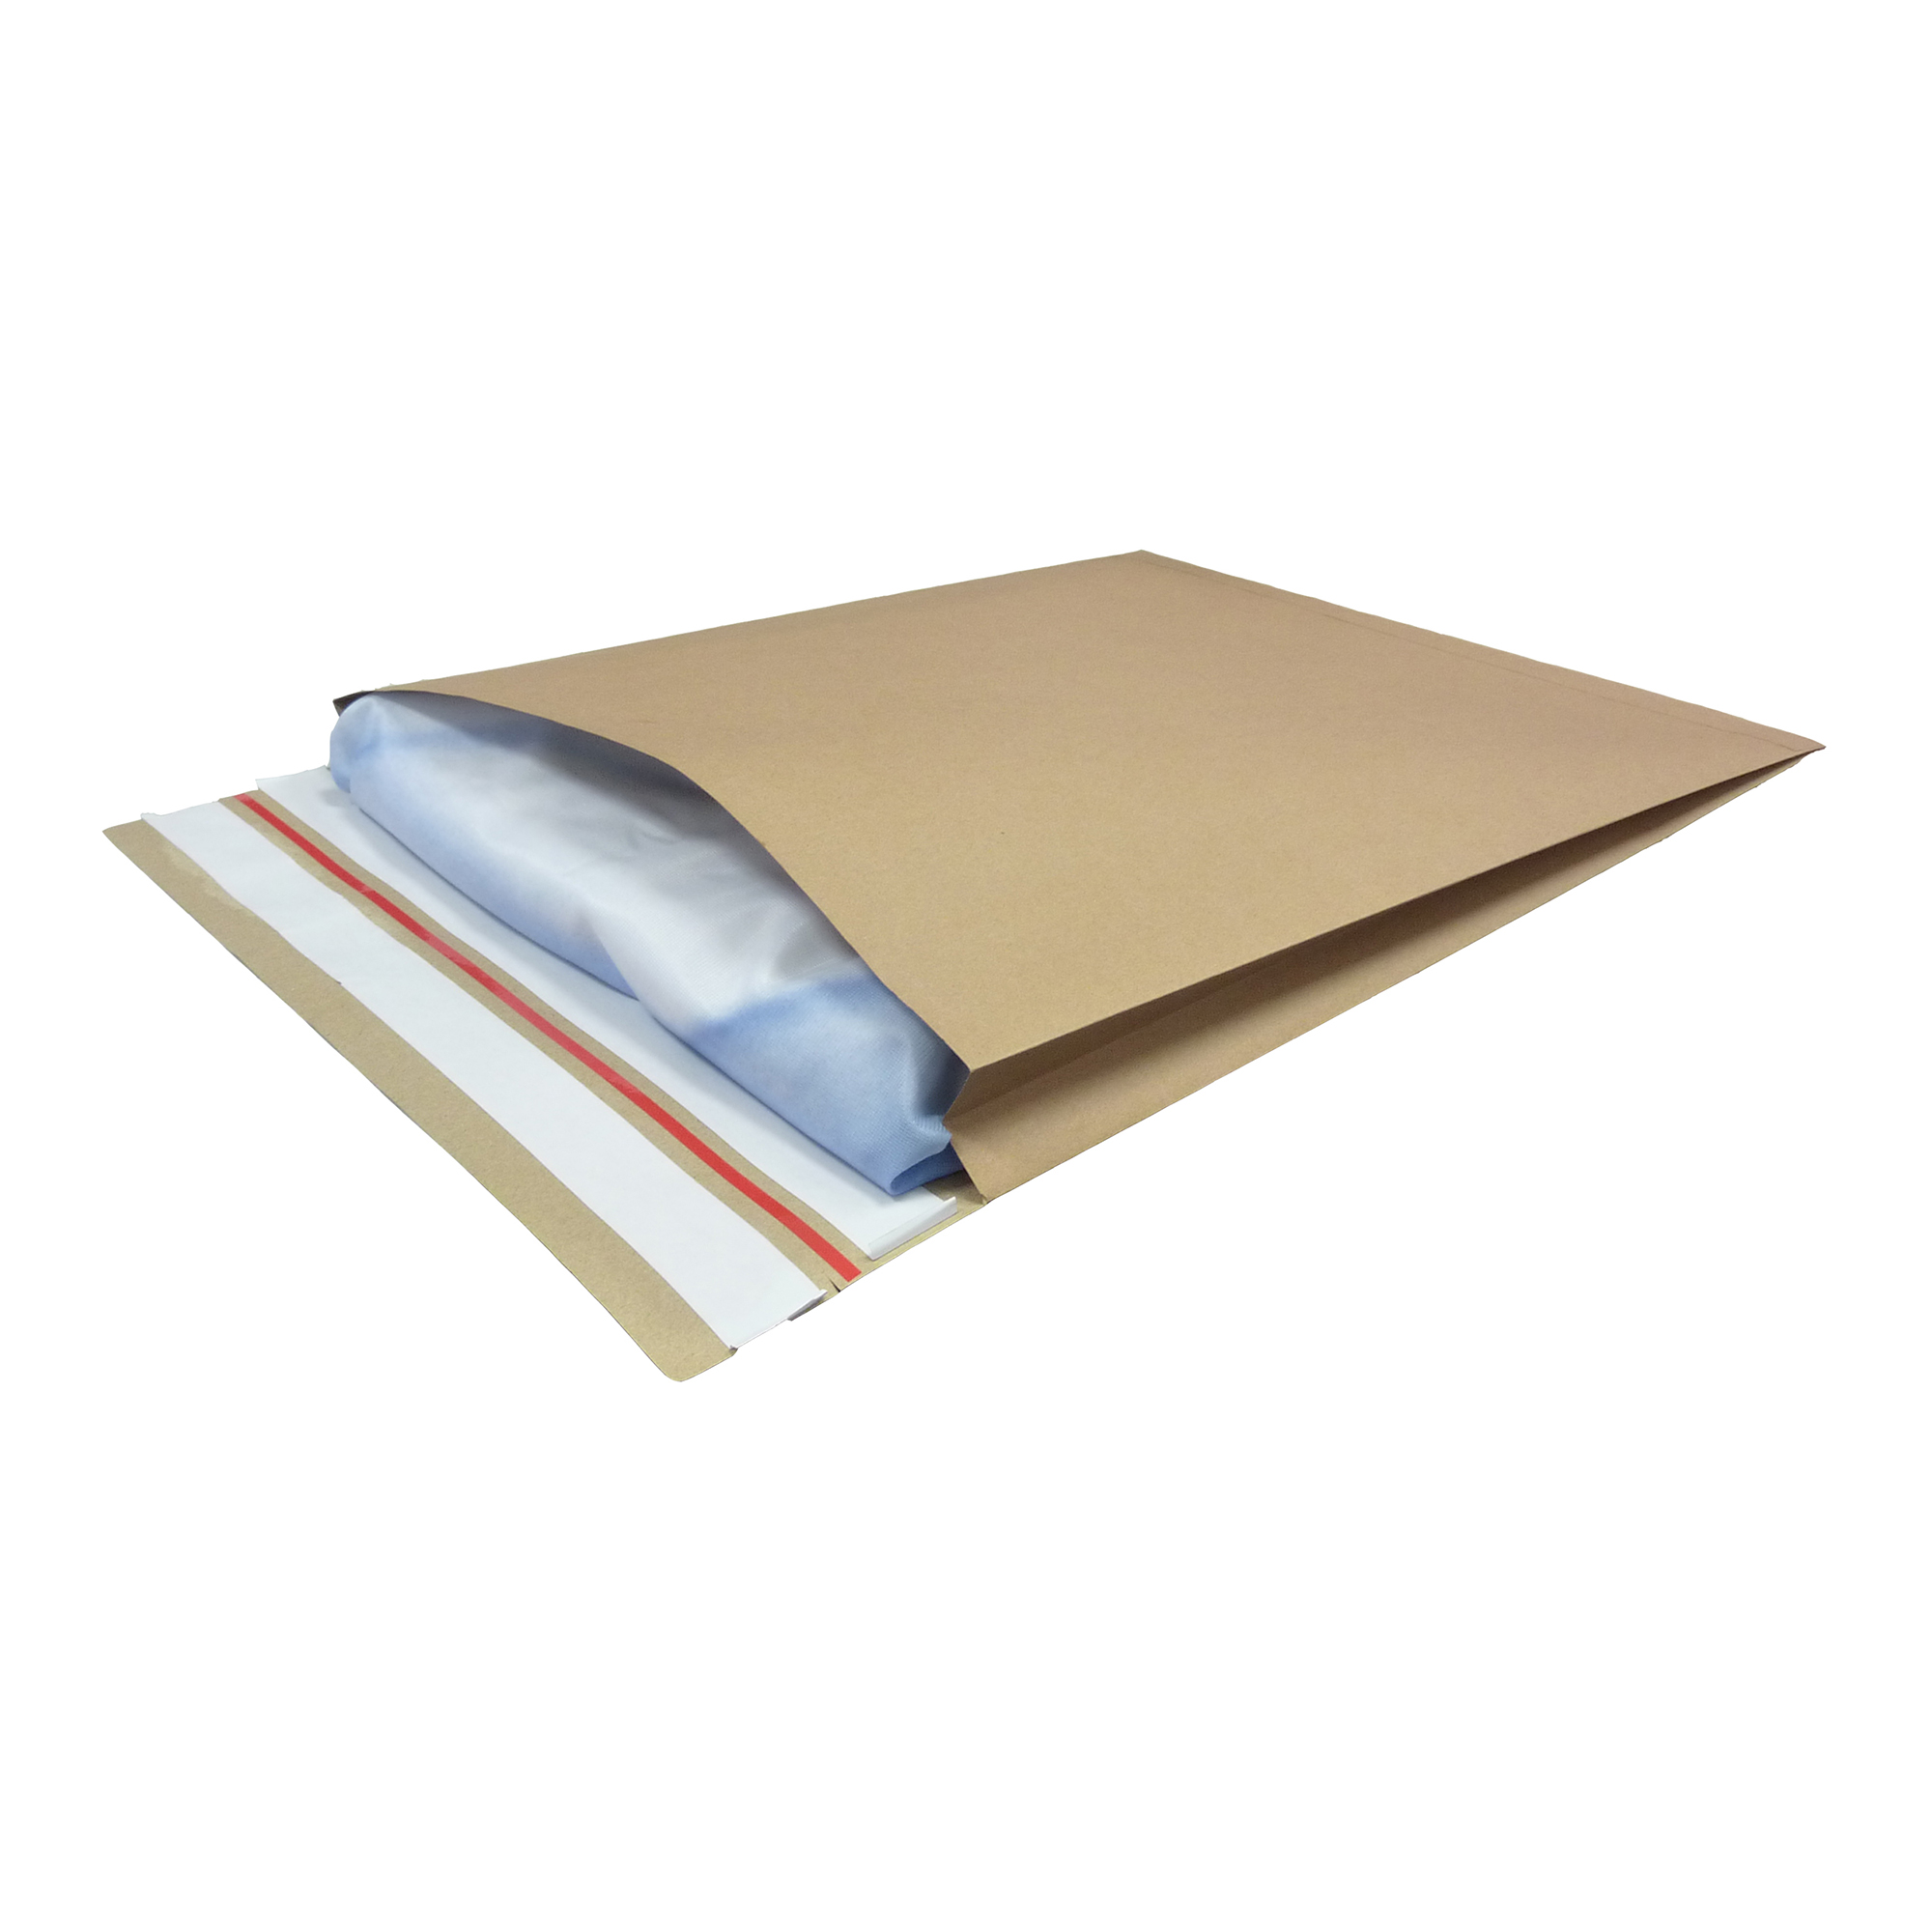 Standard envelopes Kraft Mailer Eco V Bottom & Side Gusset Double P&S 350x450x40mm +100 flap Manilla Ref RBL10532 Pack 50